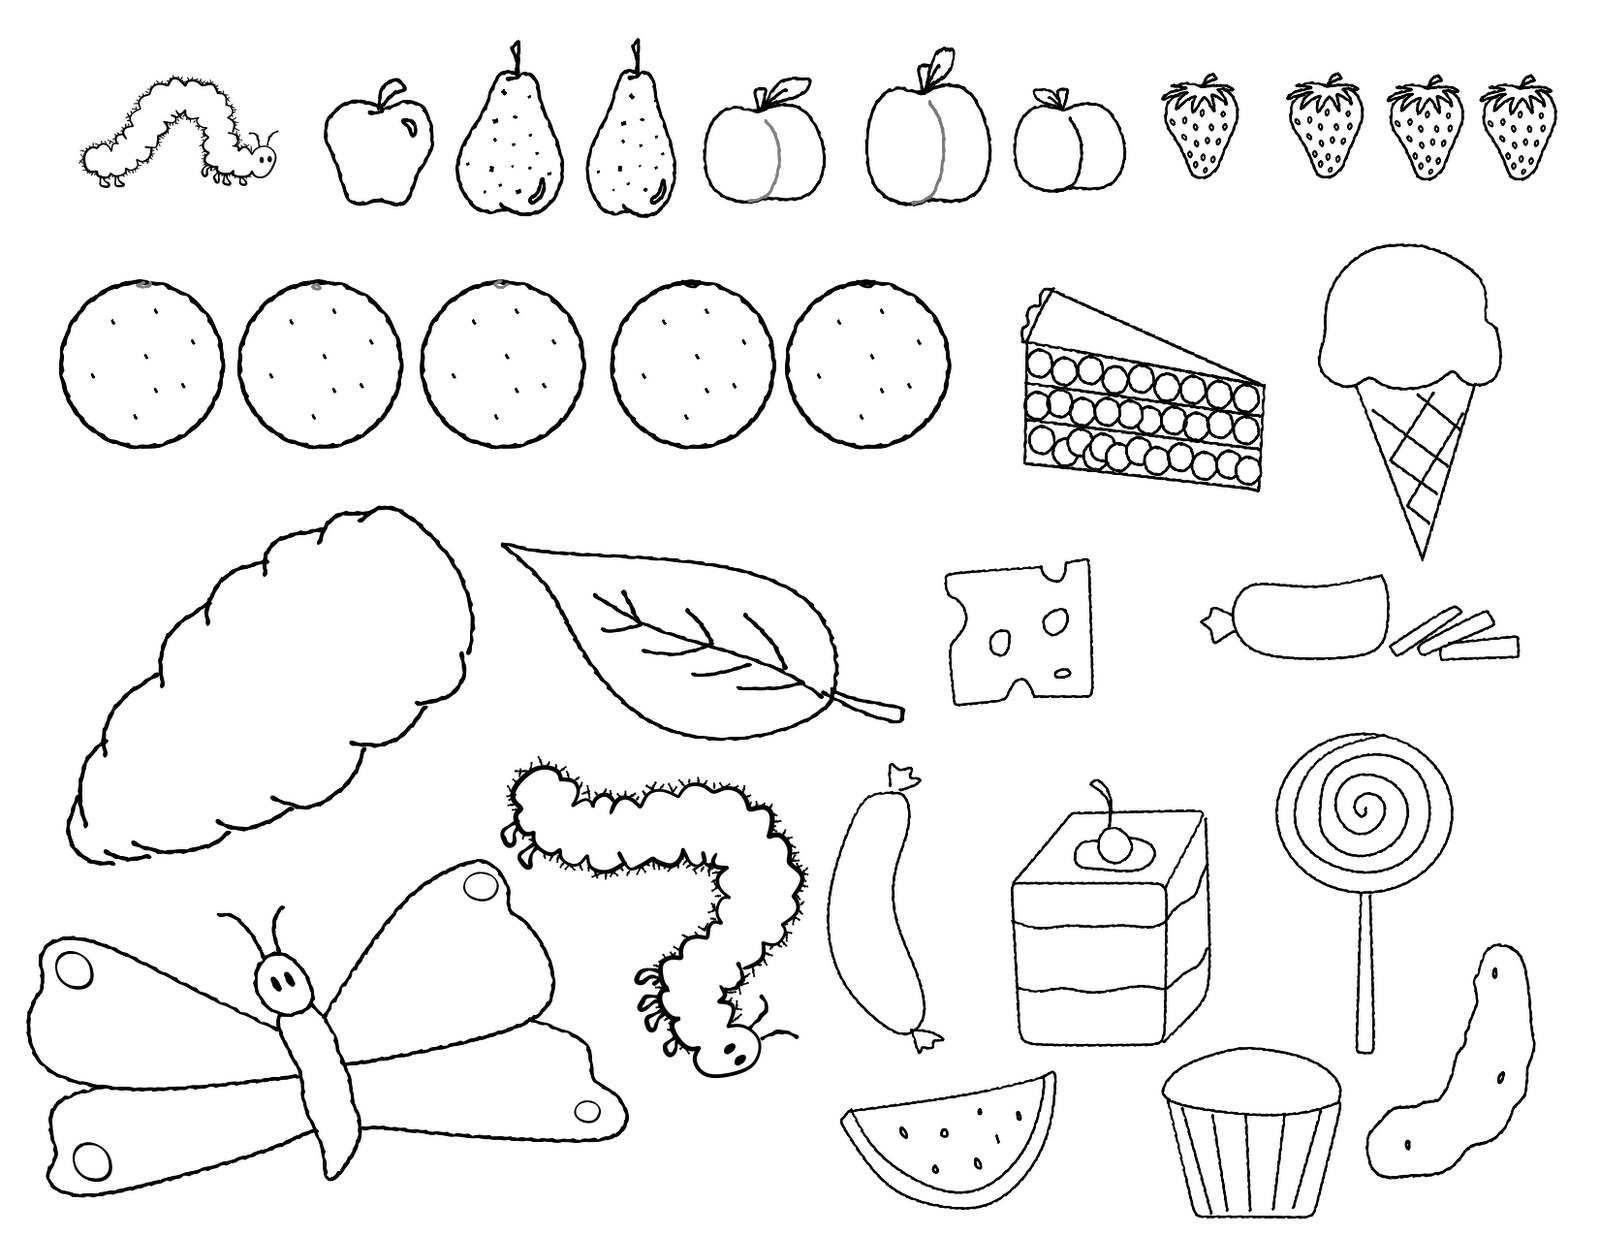 Adult Beauty The Very Hungry Caterpillar Coloring Page Gallery Images cute 1000 images about themes the very hungry caterpillar on pinterest activities and very